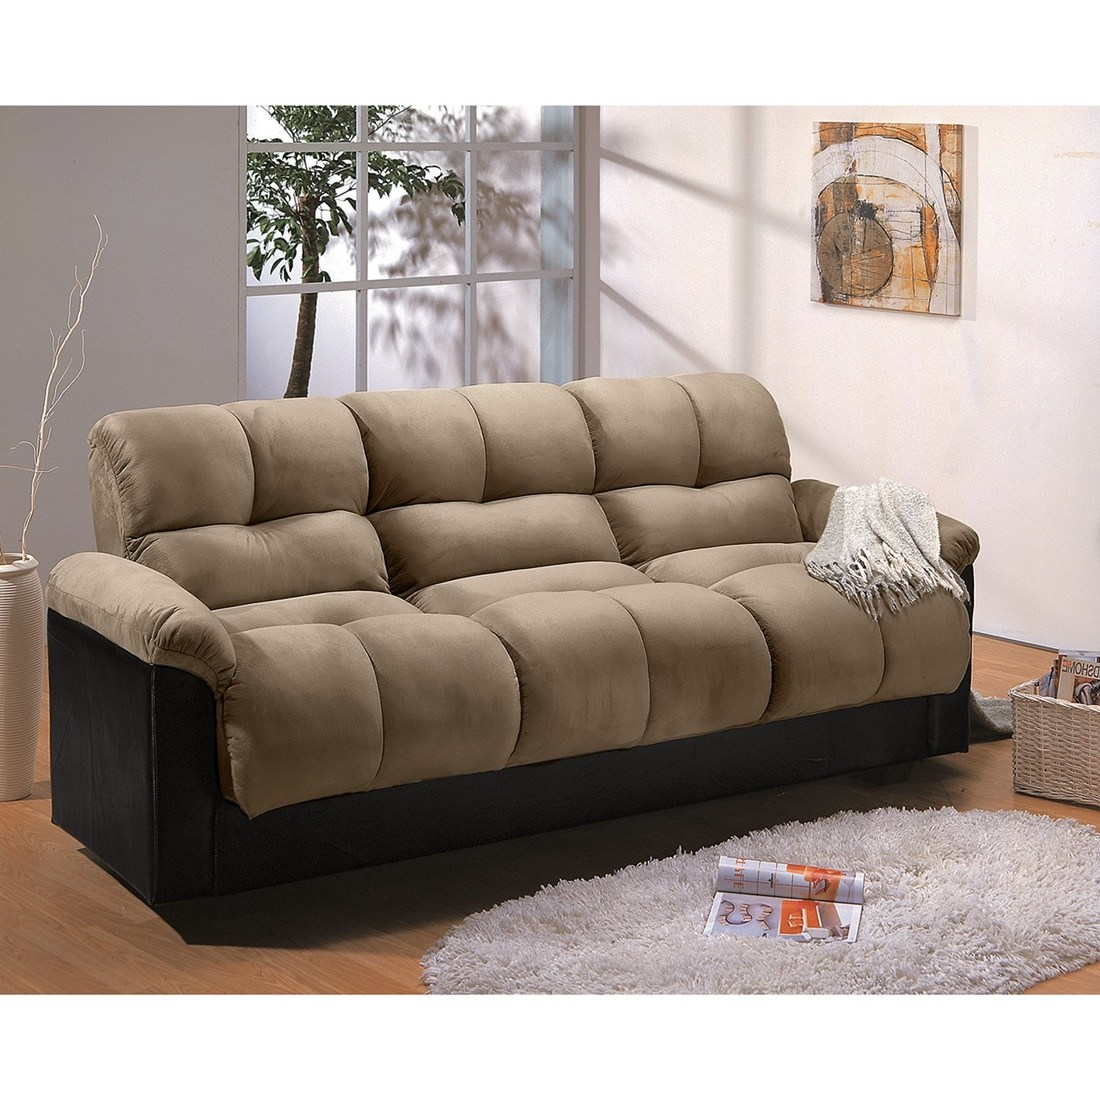 Image of: Cozy Futons Target